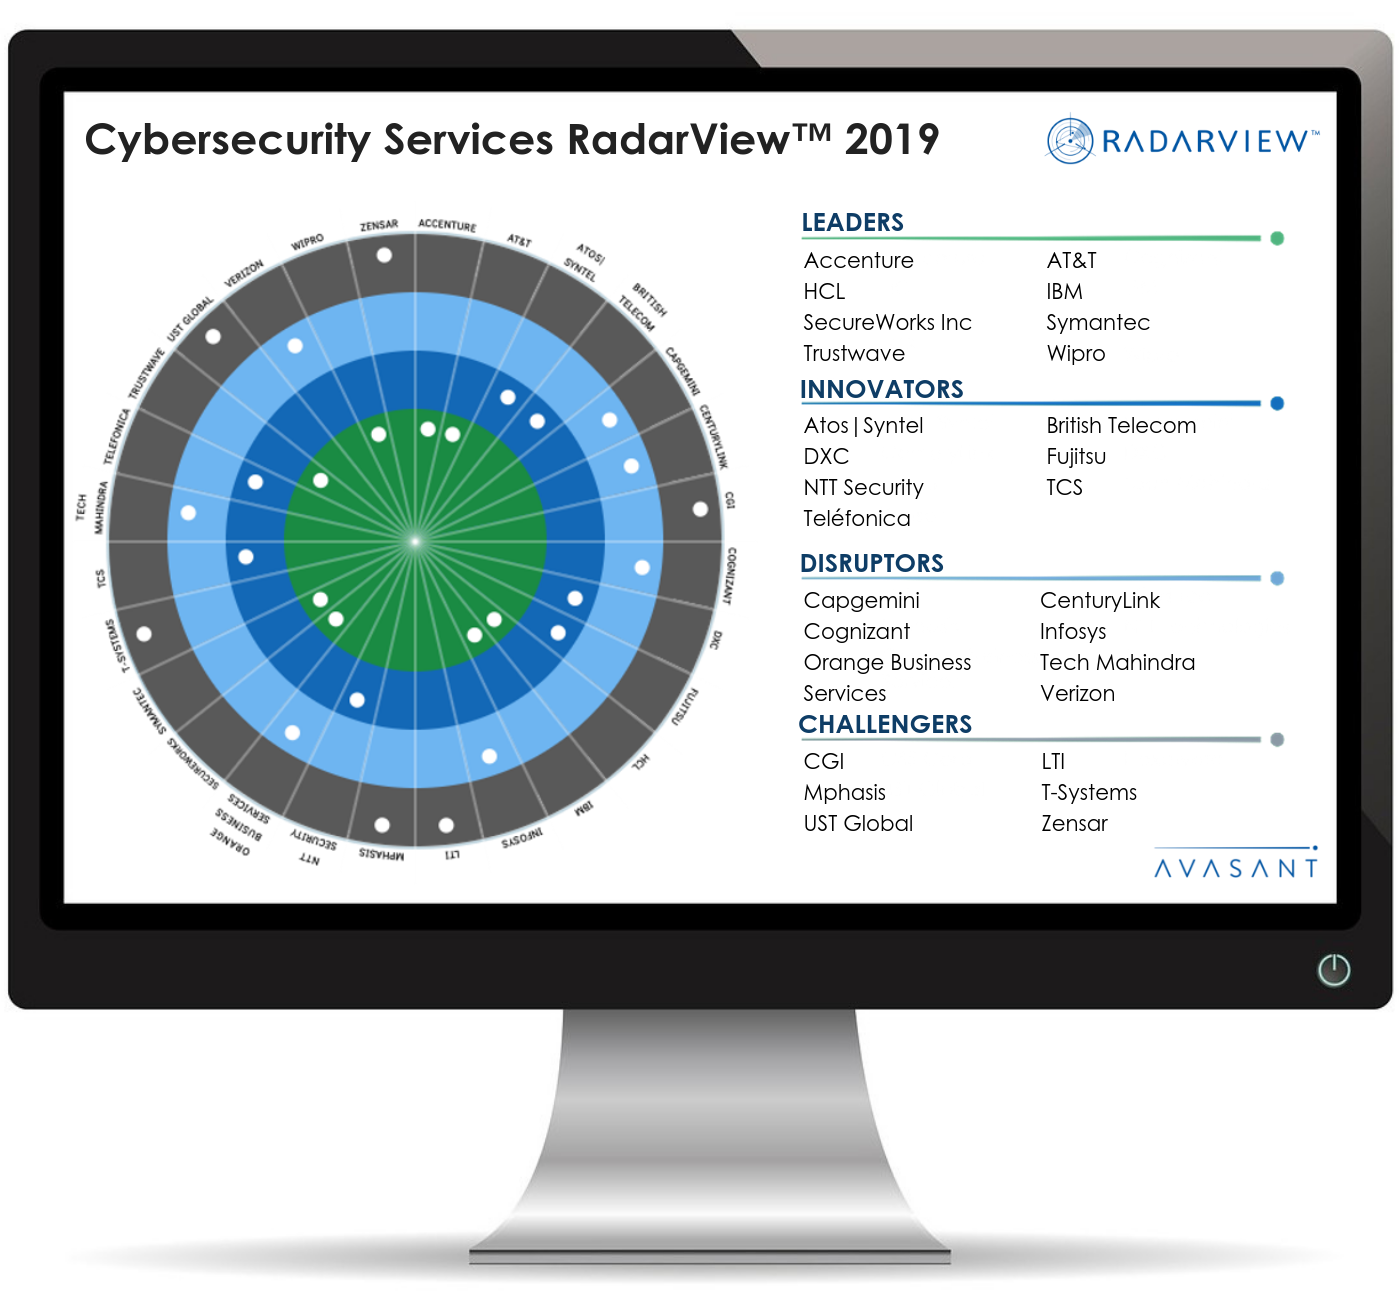 Copy of Copy of Ai and Applied Analytics full 2 - Cybersecurity Services 2019 CenturyLink RadarView™ Profile